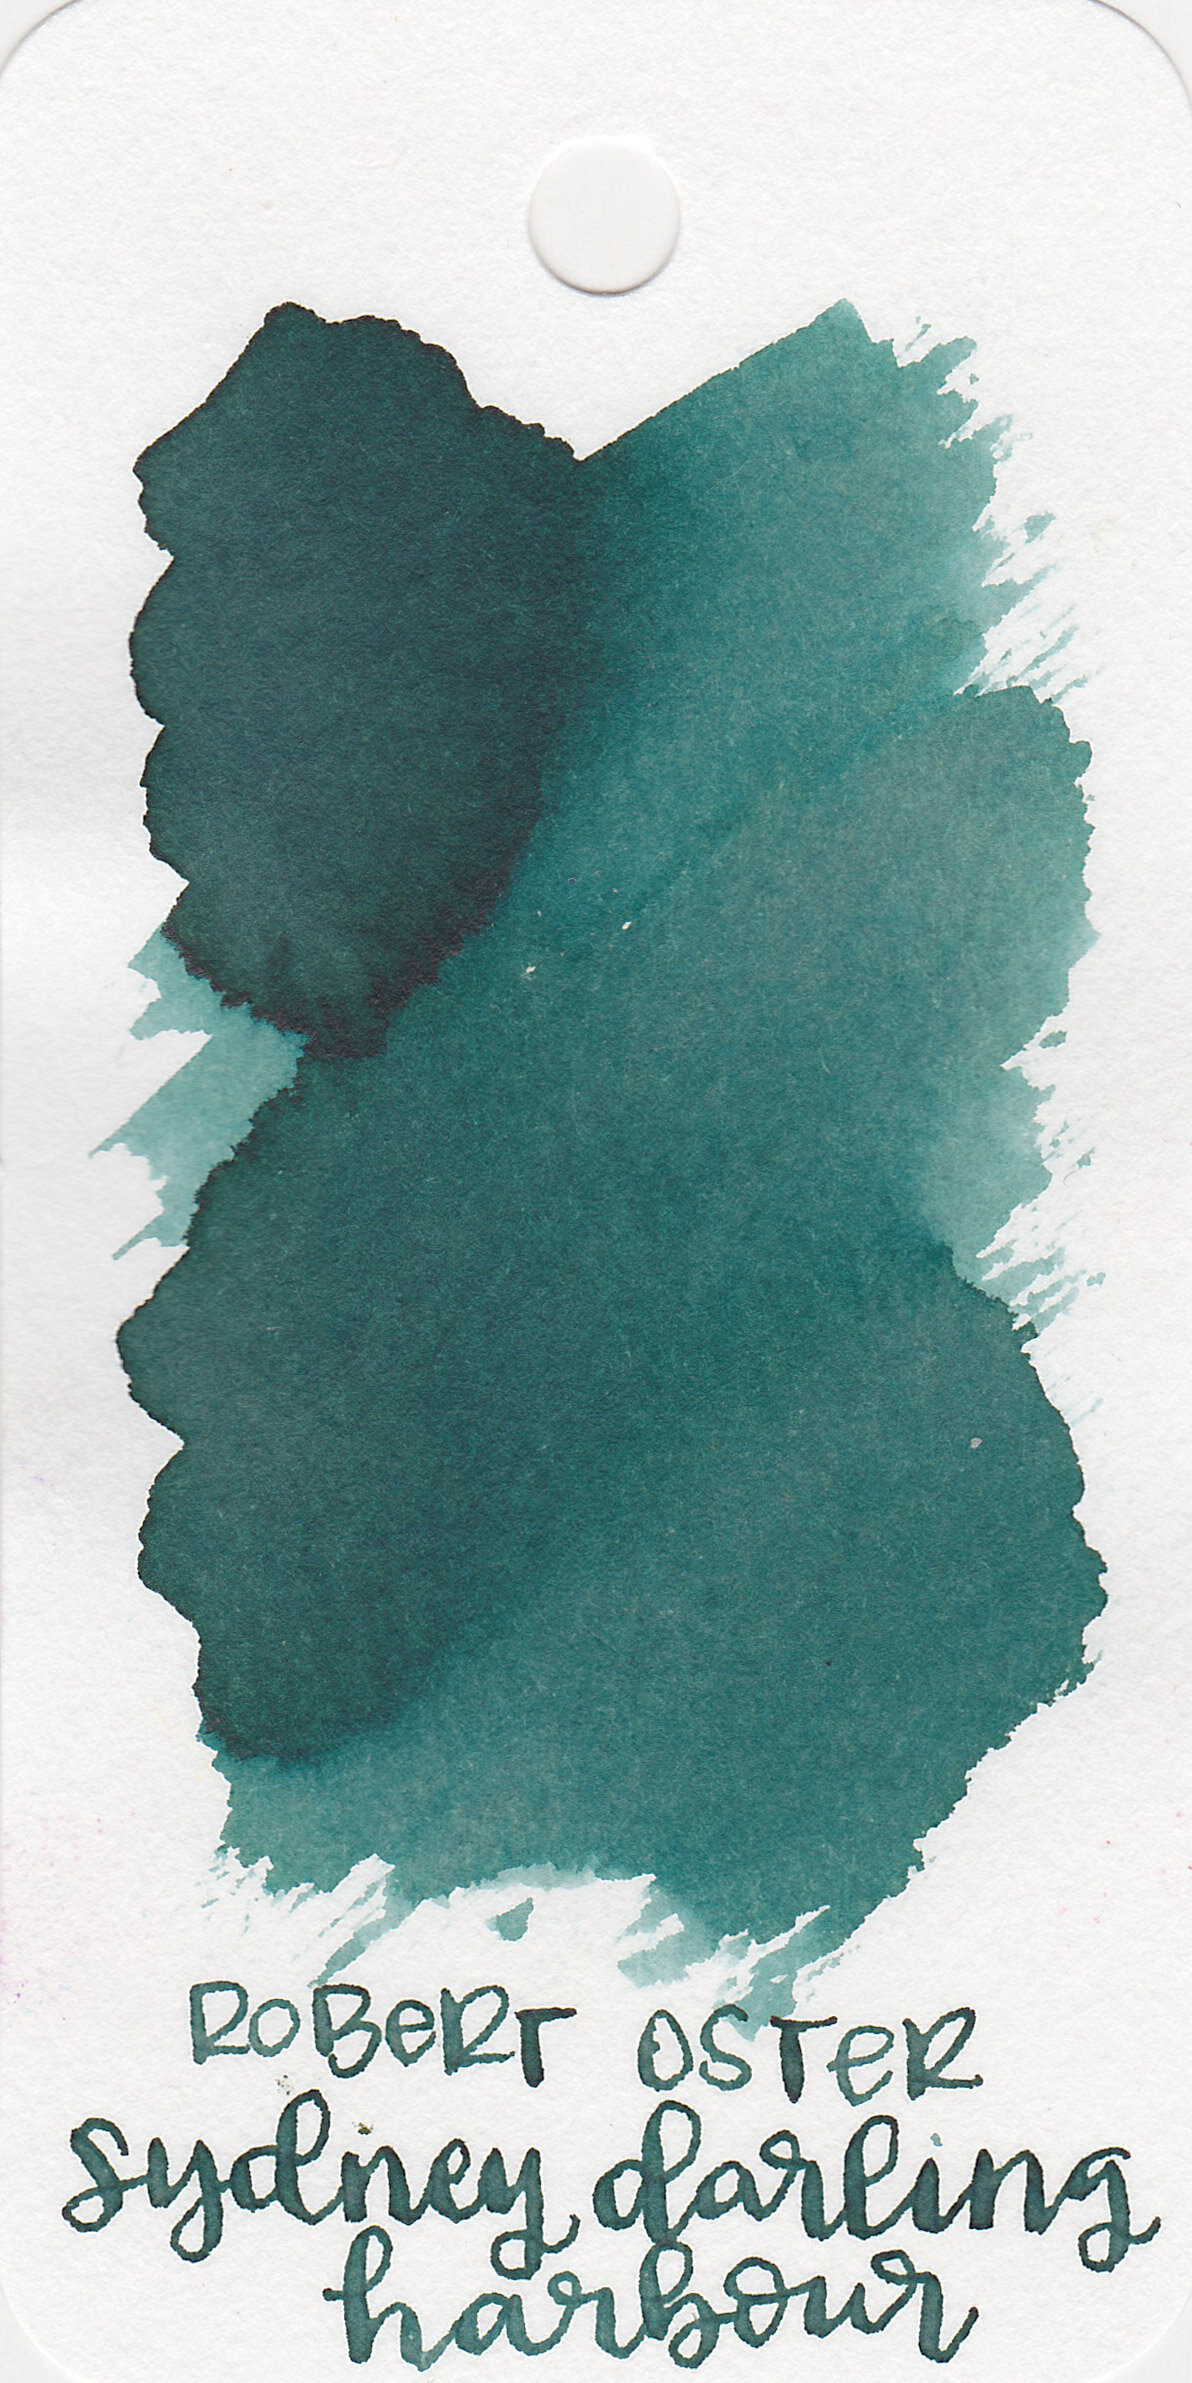 The color: - Sydney Darling Harbour is a medium green. It's almost an unsaturated mint green or dark mint julep.